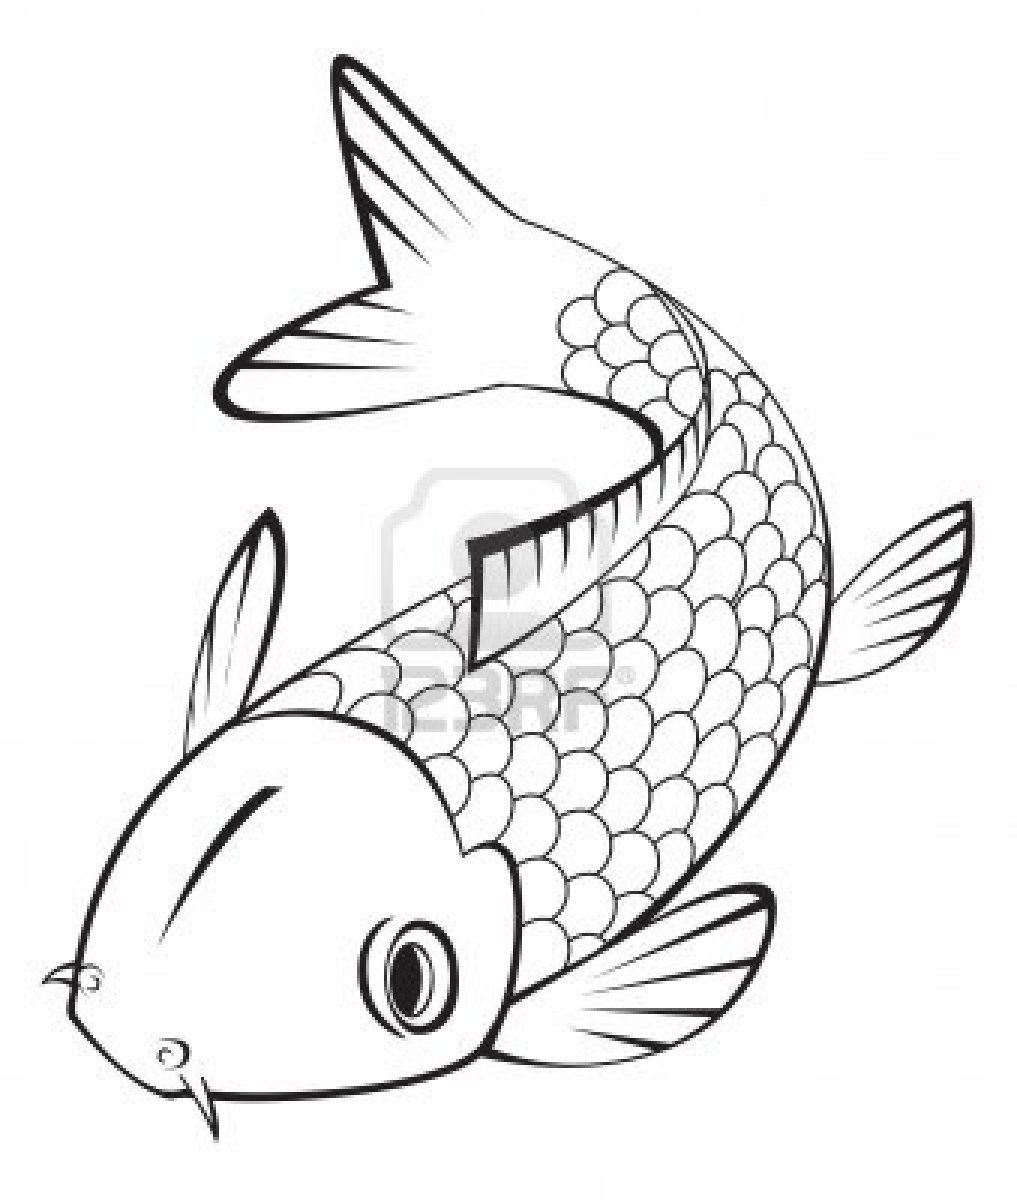 Simple Fish Line Art : Download koi fish coloring pages water lilies